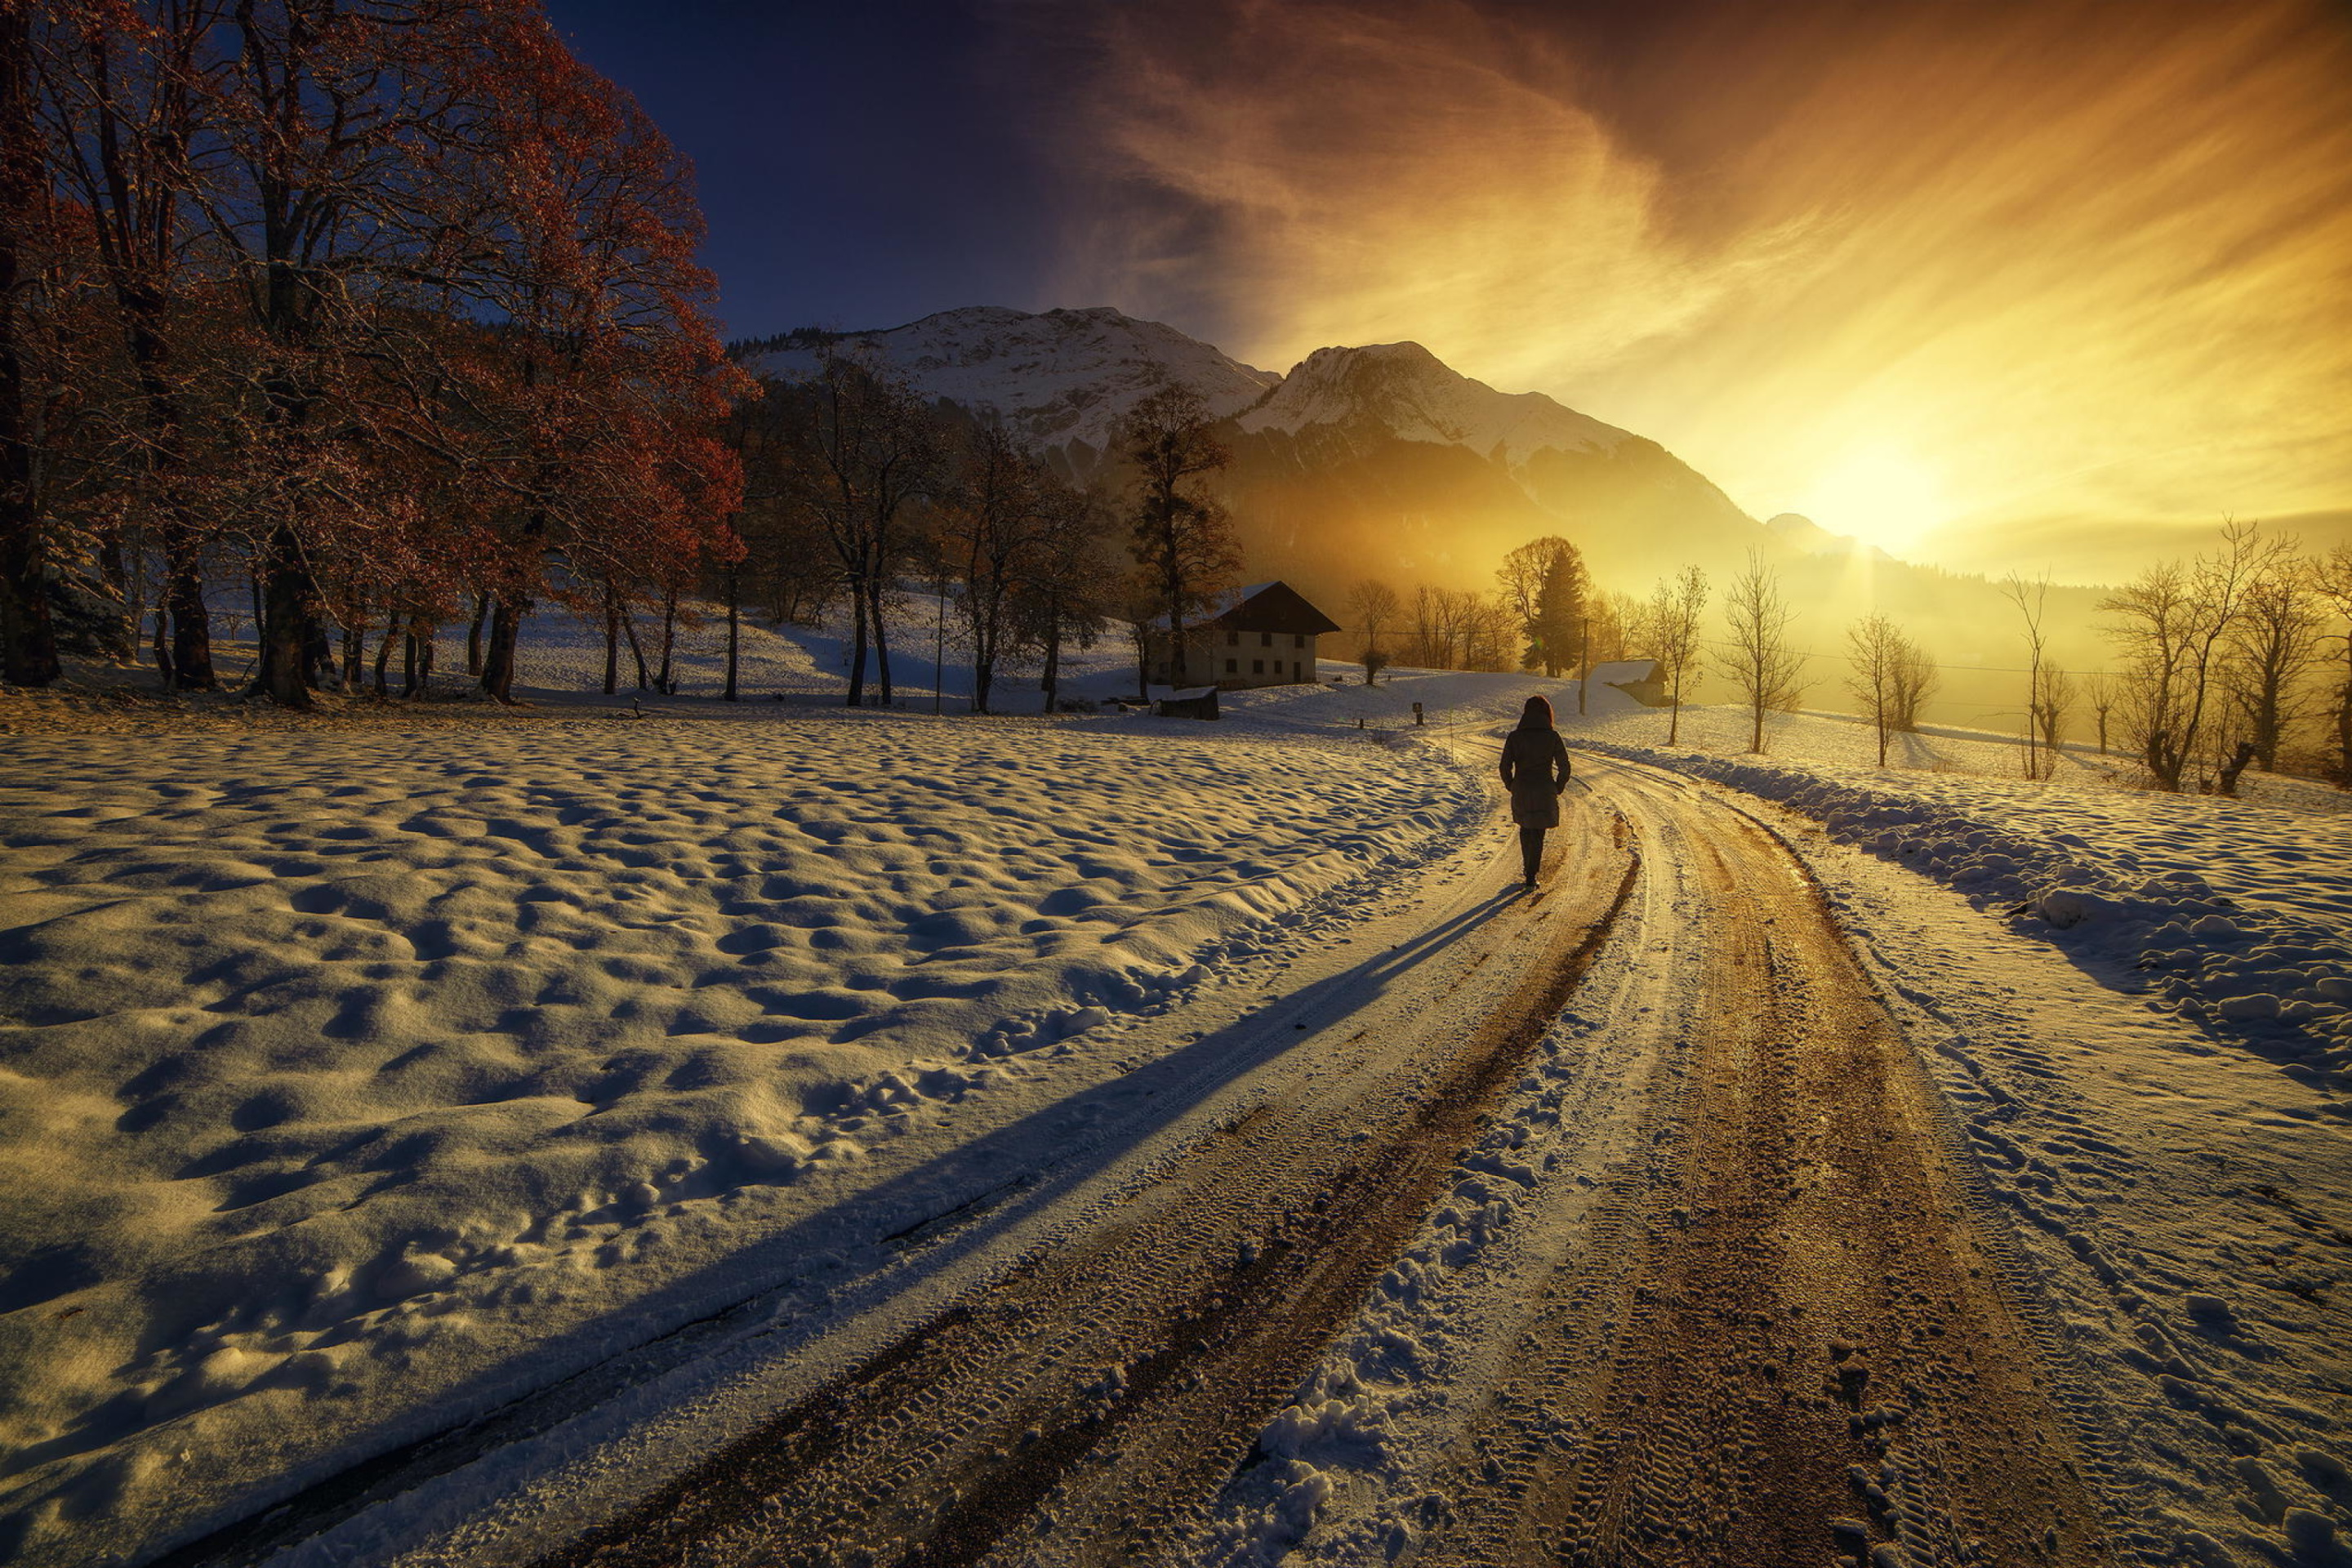 Winter Sunrise wallpaper 2880x1920